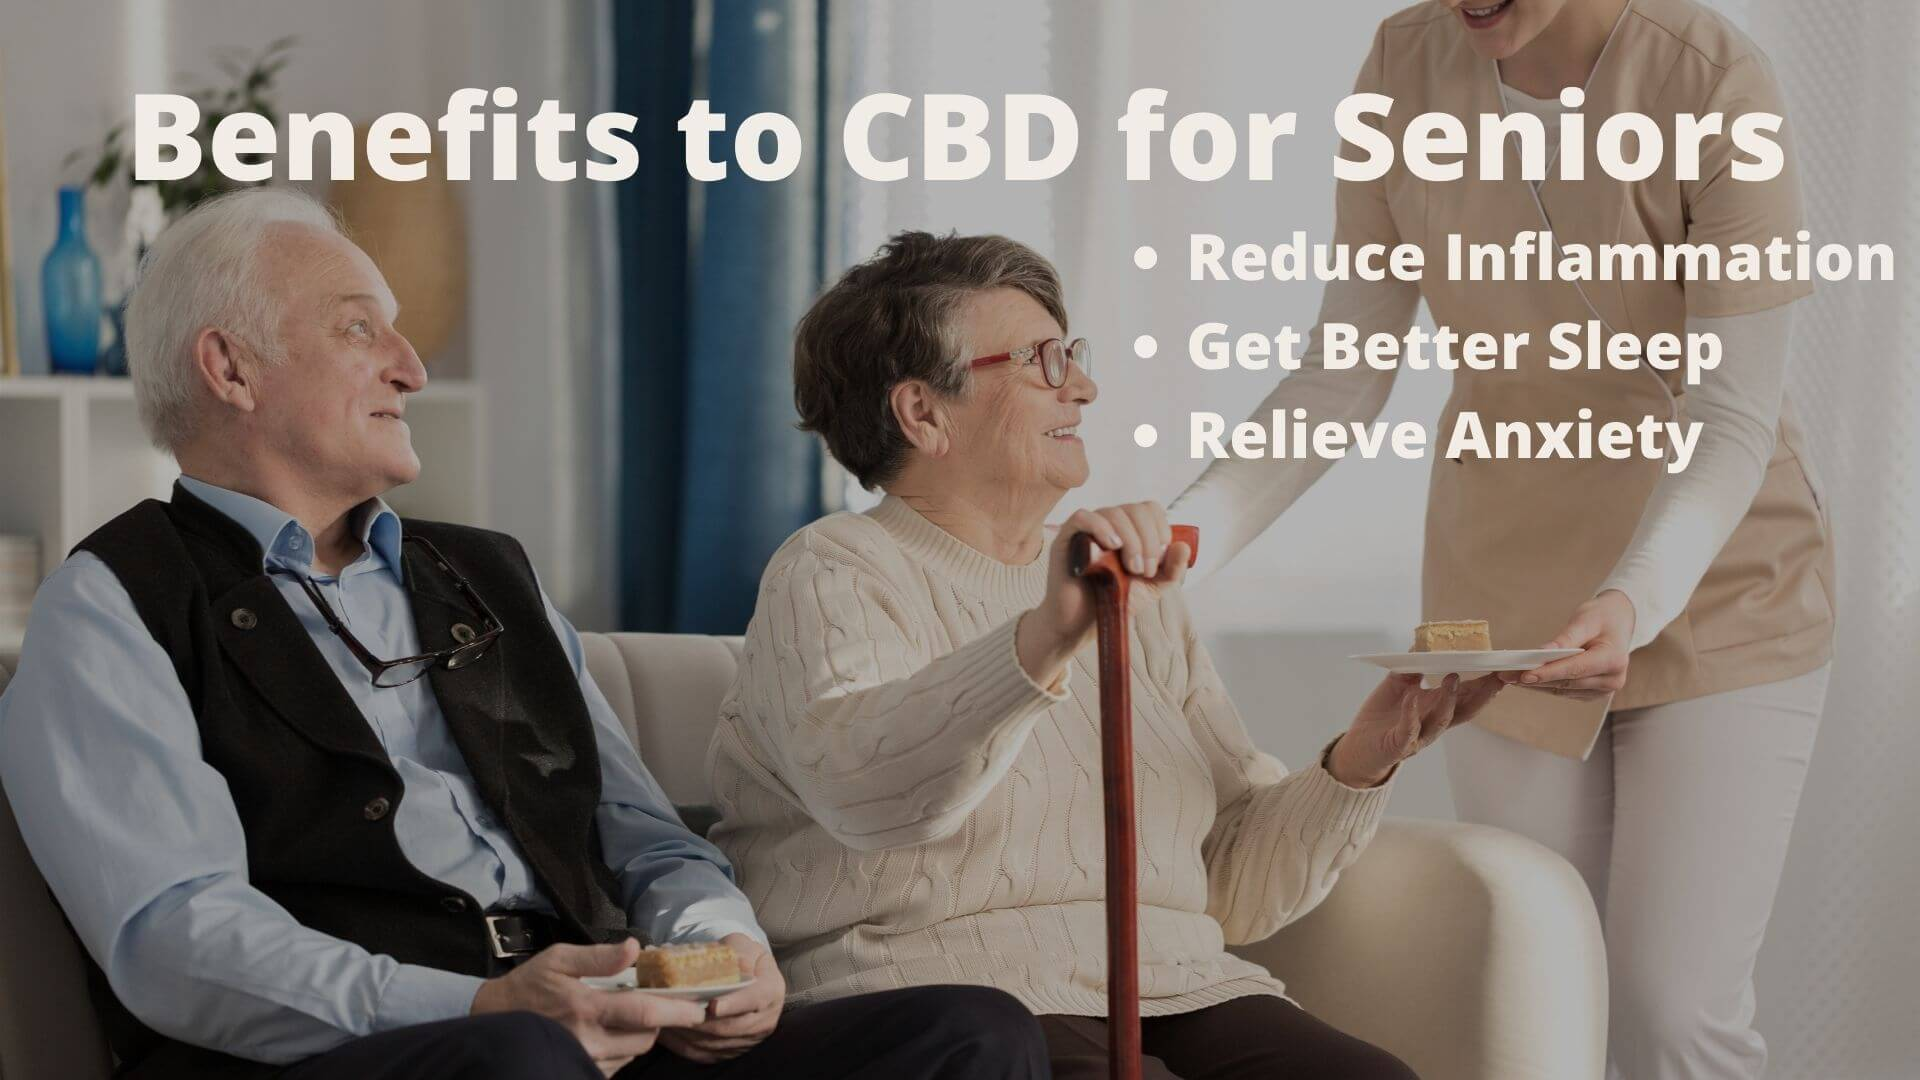 Two Seniors learning about the benefits to CBD for Seniors